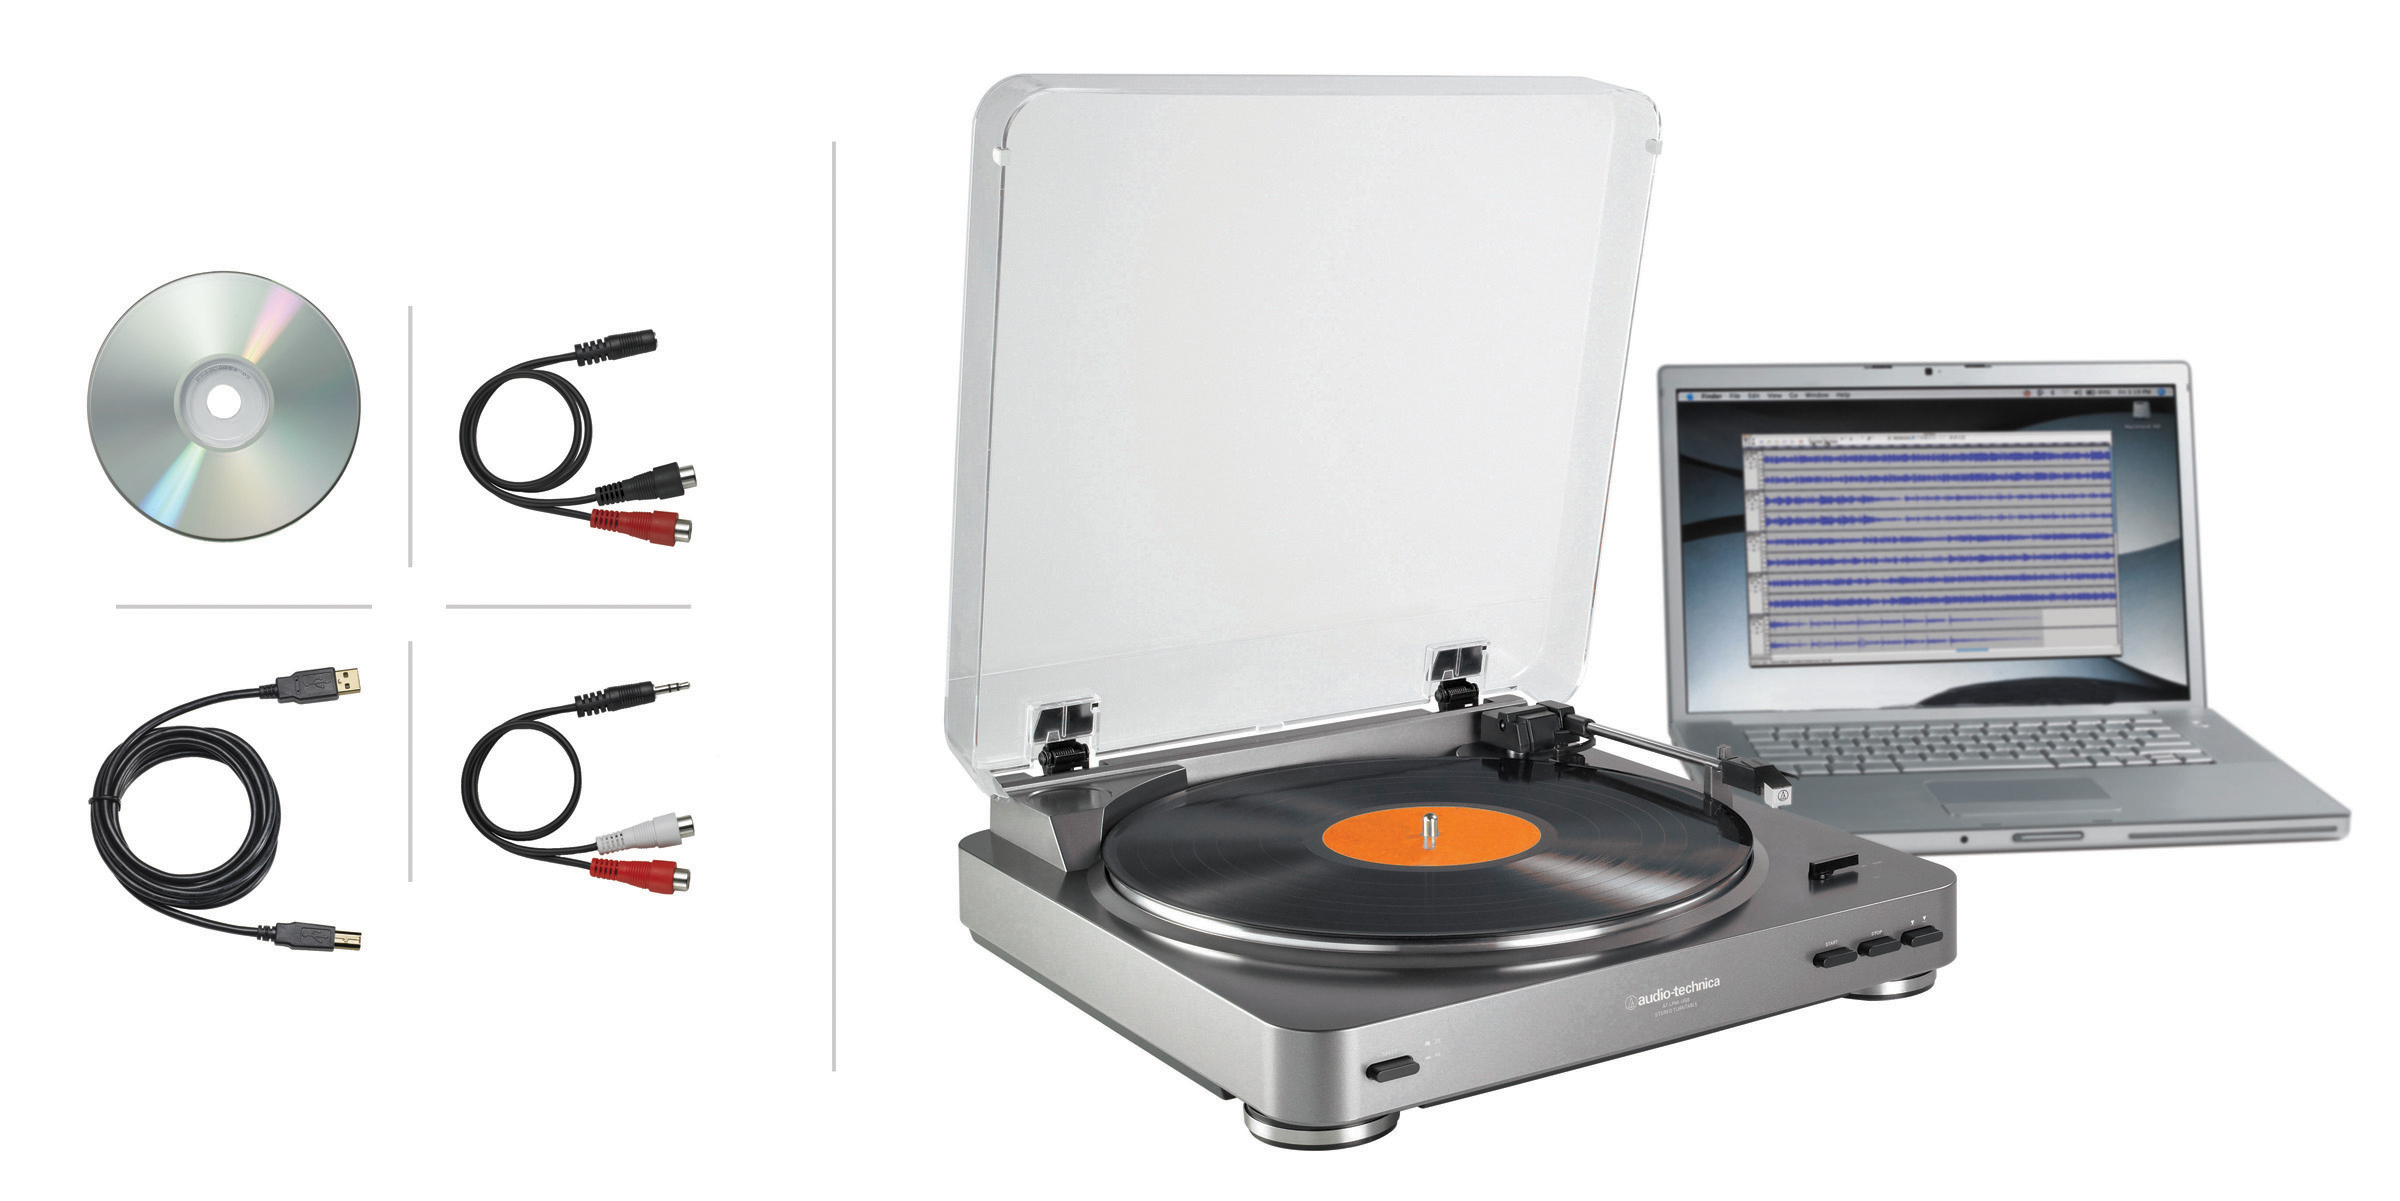 Audio Technica LP60 USB Turntable